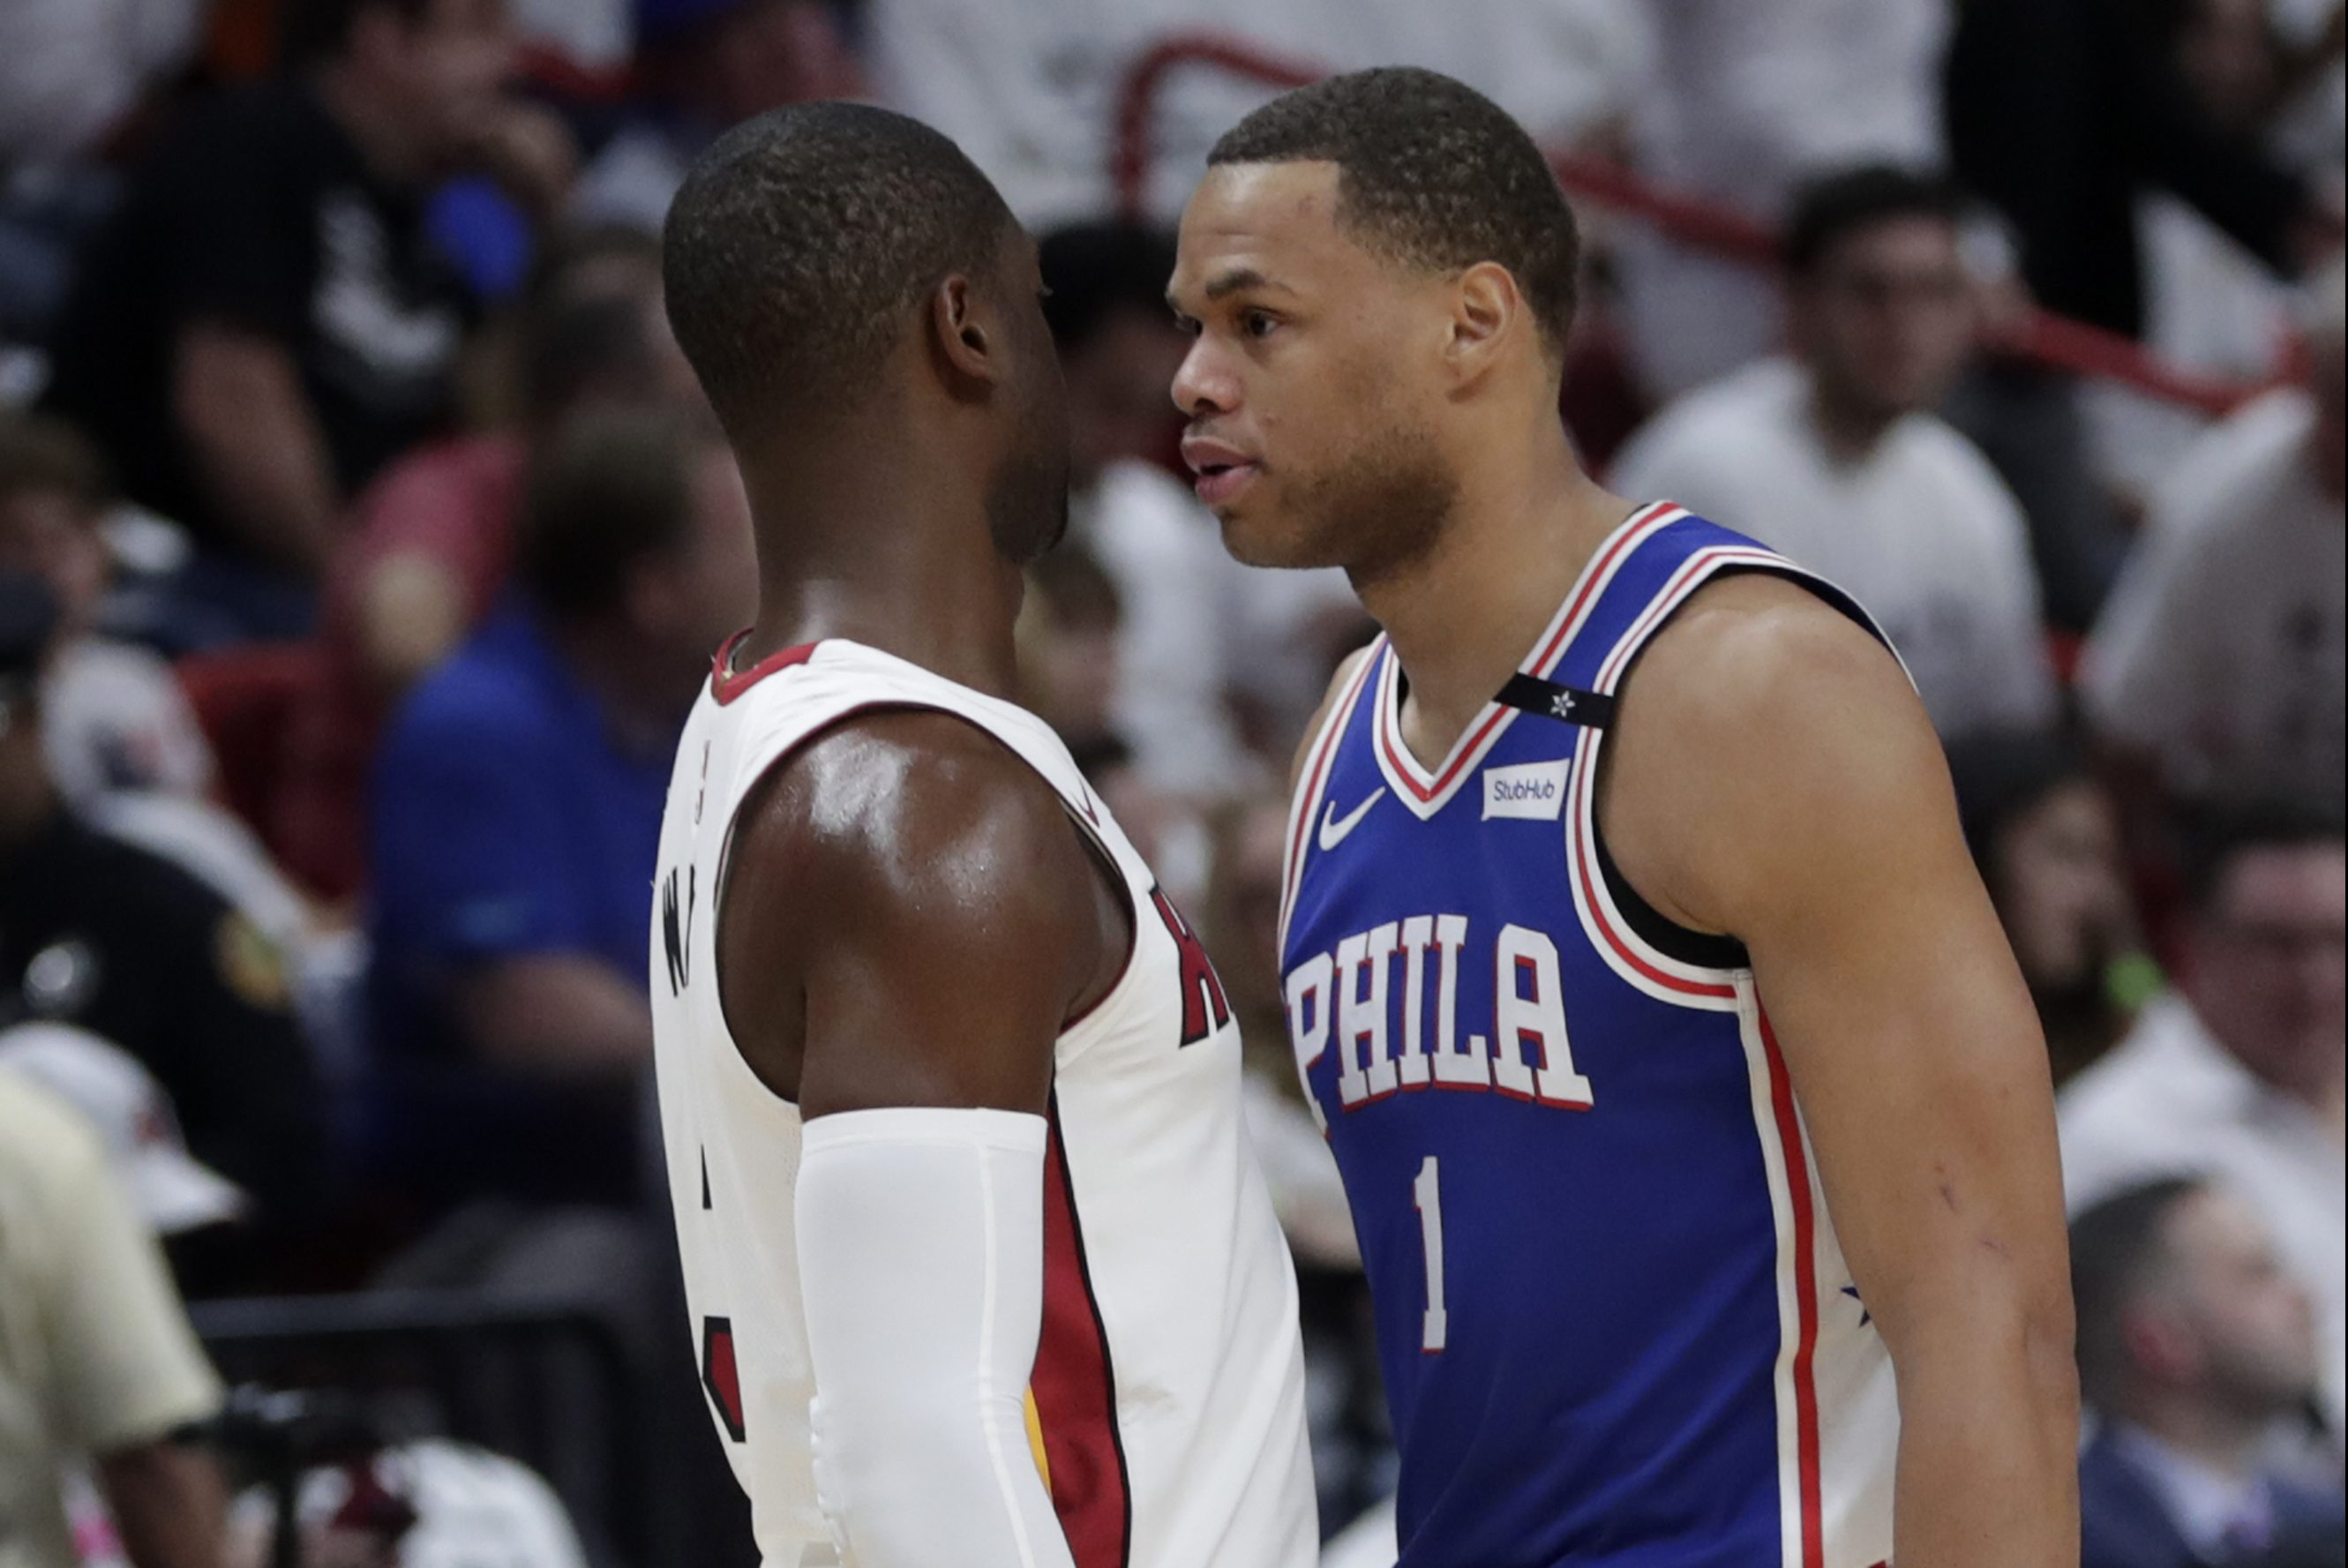 The Heat´s Dwyane Wade (left) and the Sixers´ Justin Anderson going face to face in Game 3.